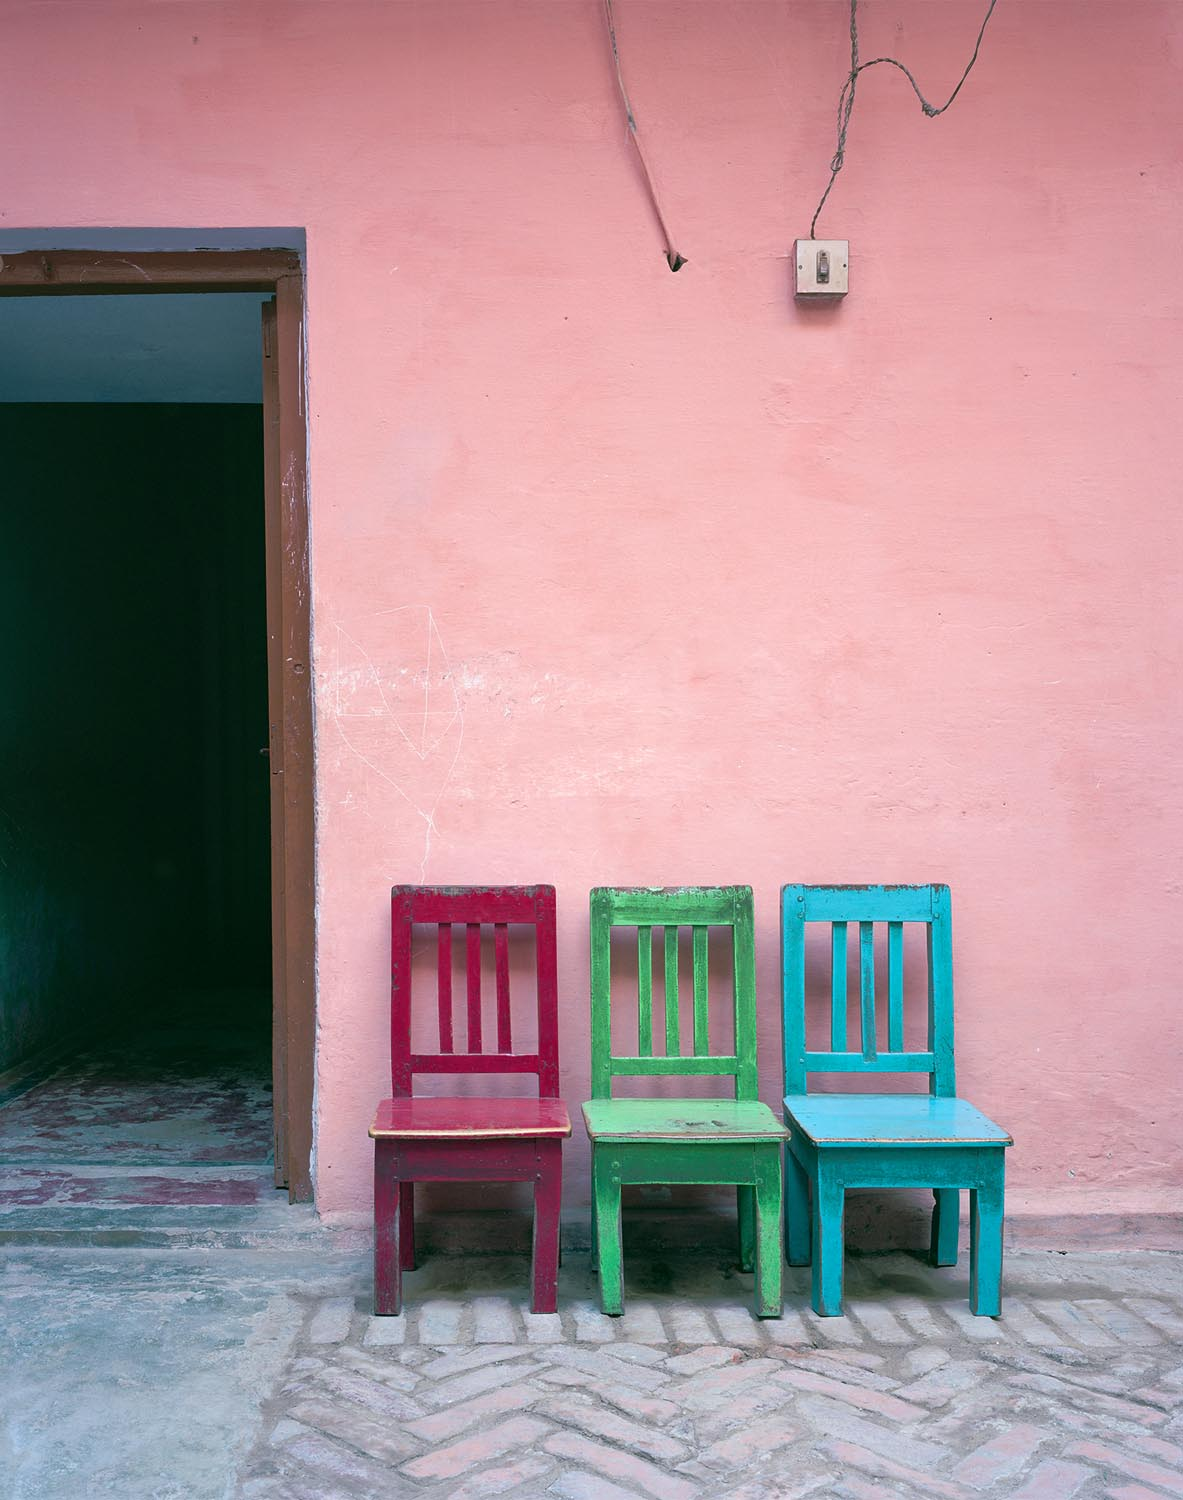 a-pink-dress-untitled-red-green-blue-chairs-2012